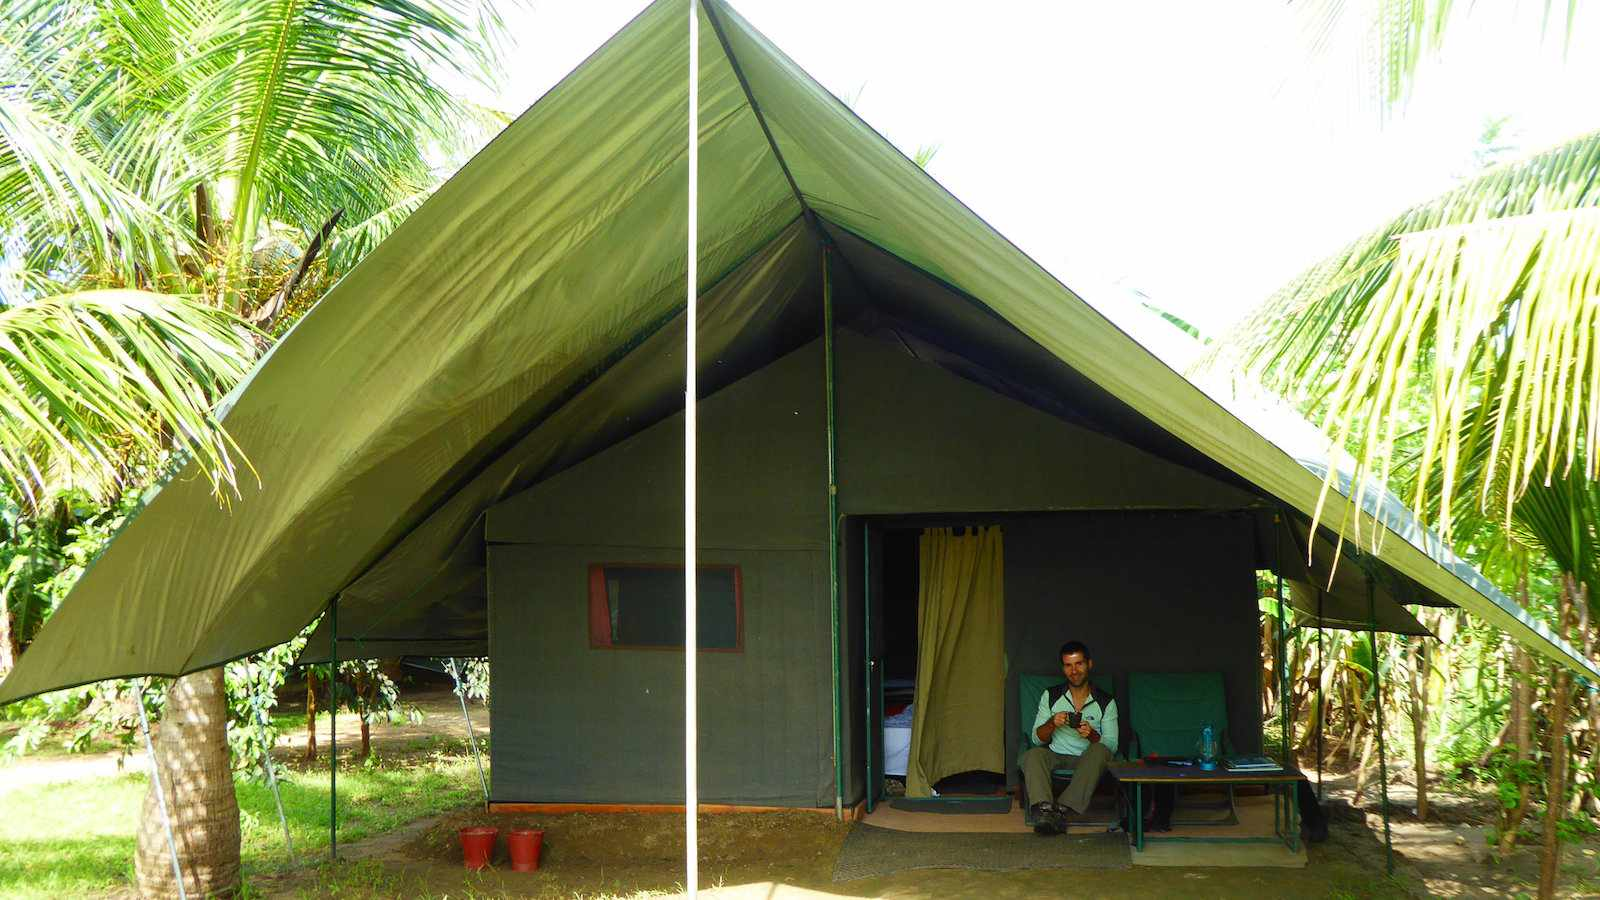 For an incredible safari experience in Udawalawe National Park you have to try glamping with Master Campers